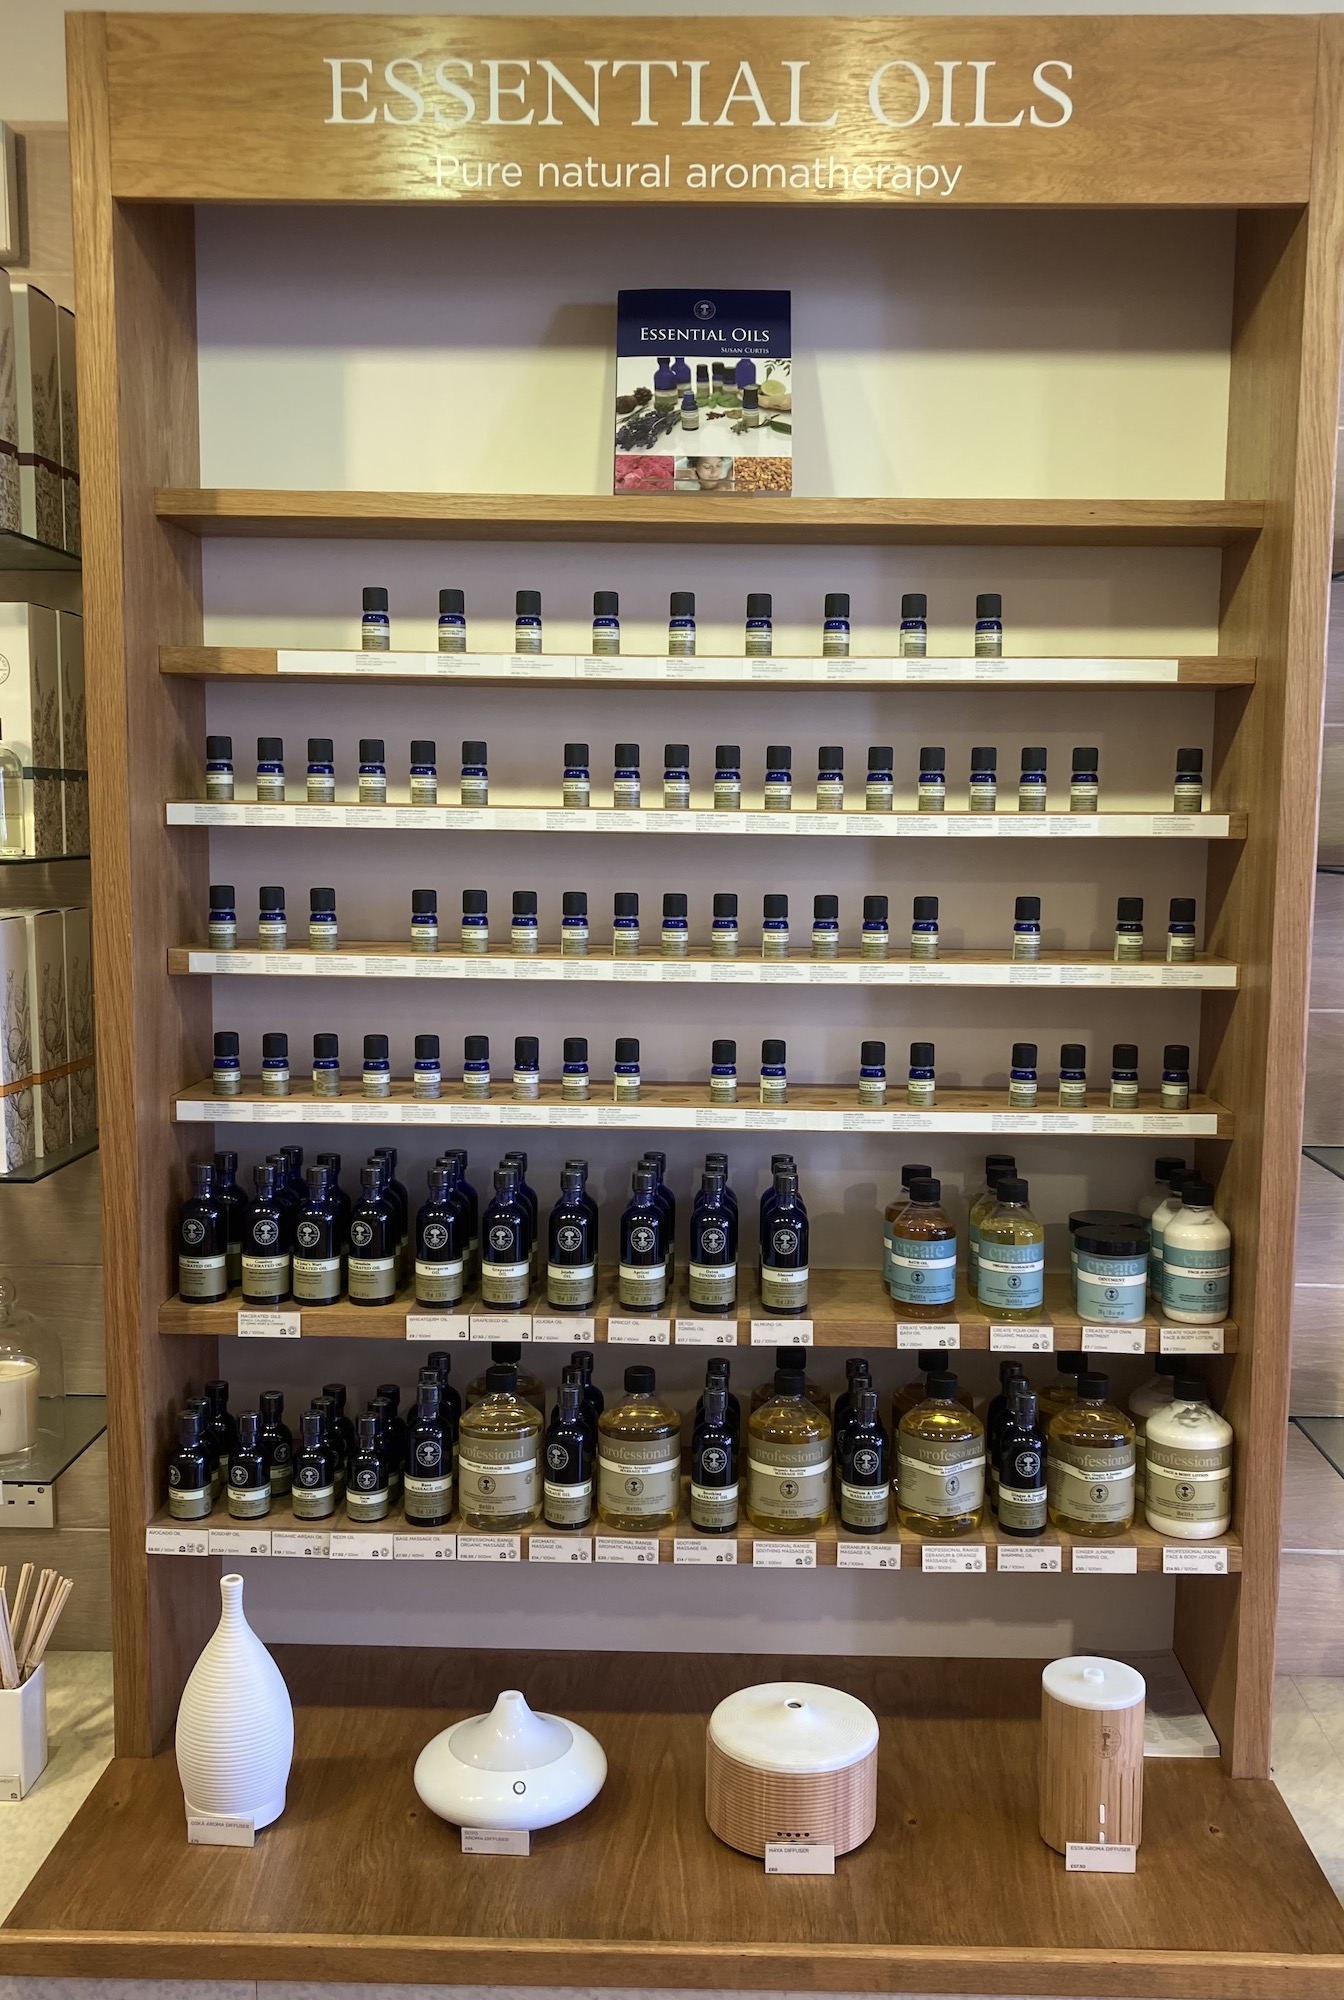 Stand of essential oils at Neal's Yard Leamington, as a good example of the selection available